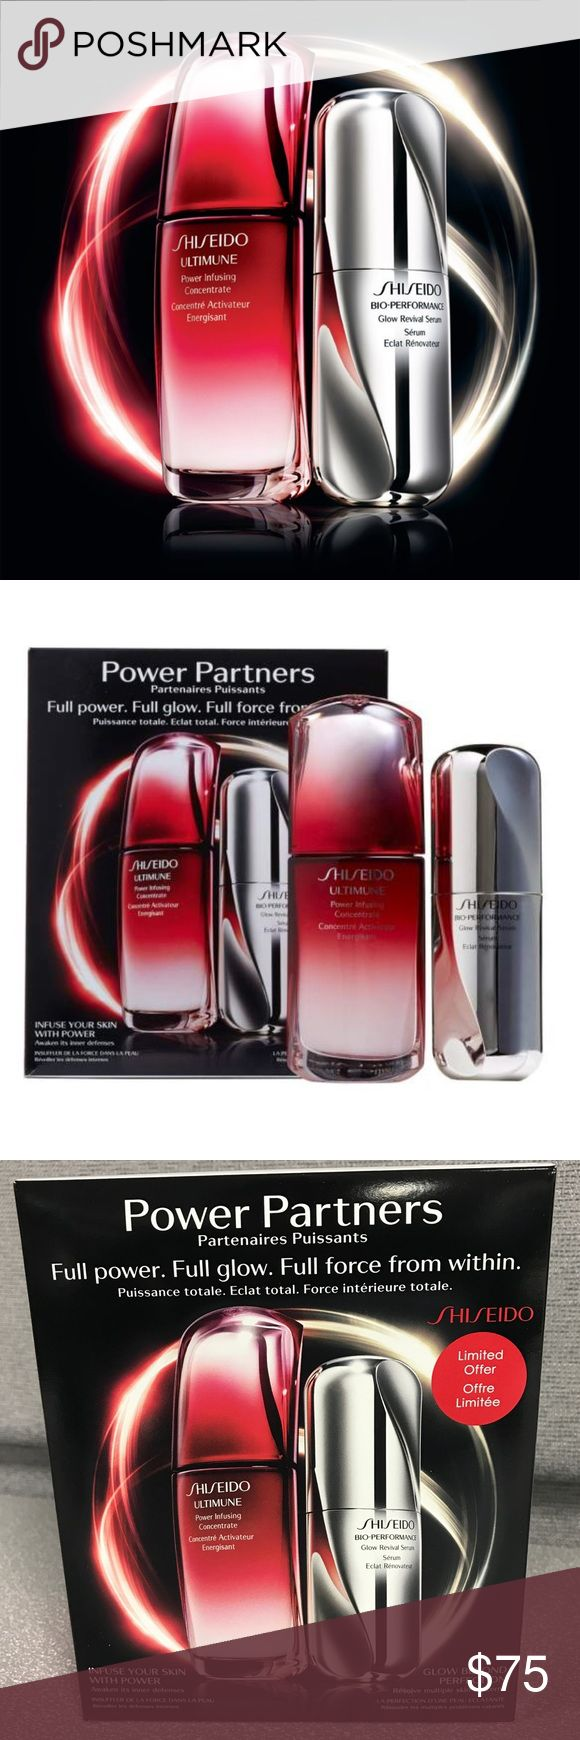 NEW Shiseido Power Partners The Shiseido Power Partners duo gives you the ultimate glowing complexion that becomes more dynamic over time. Duo includes: Full-size Ultimune Power Infusing Concentrate: a concentrate that helps boost skin's multi-defensive powers while helping strengthen its resistance to day-to-day damage & signs of aging. Full-size Bio-Performance Glow Revival Serum: a multi-benefit formula that focuses on the role of the capillaries for skin that appears even in tone…